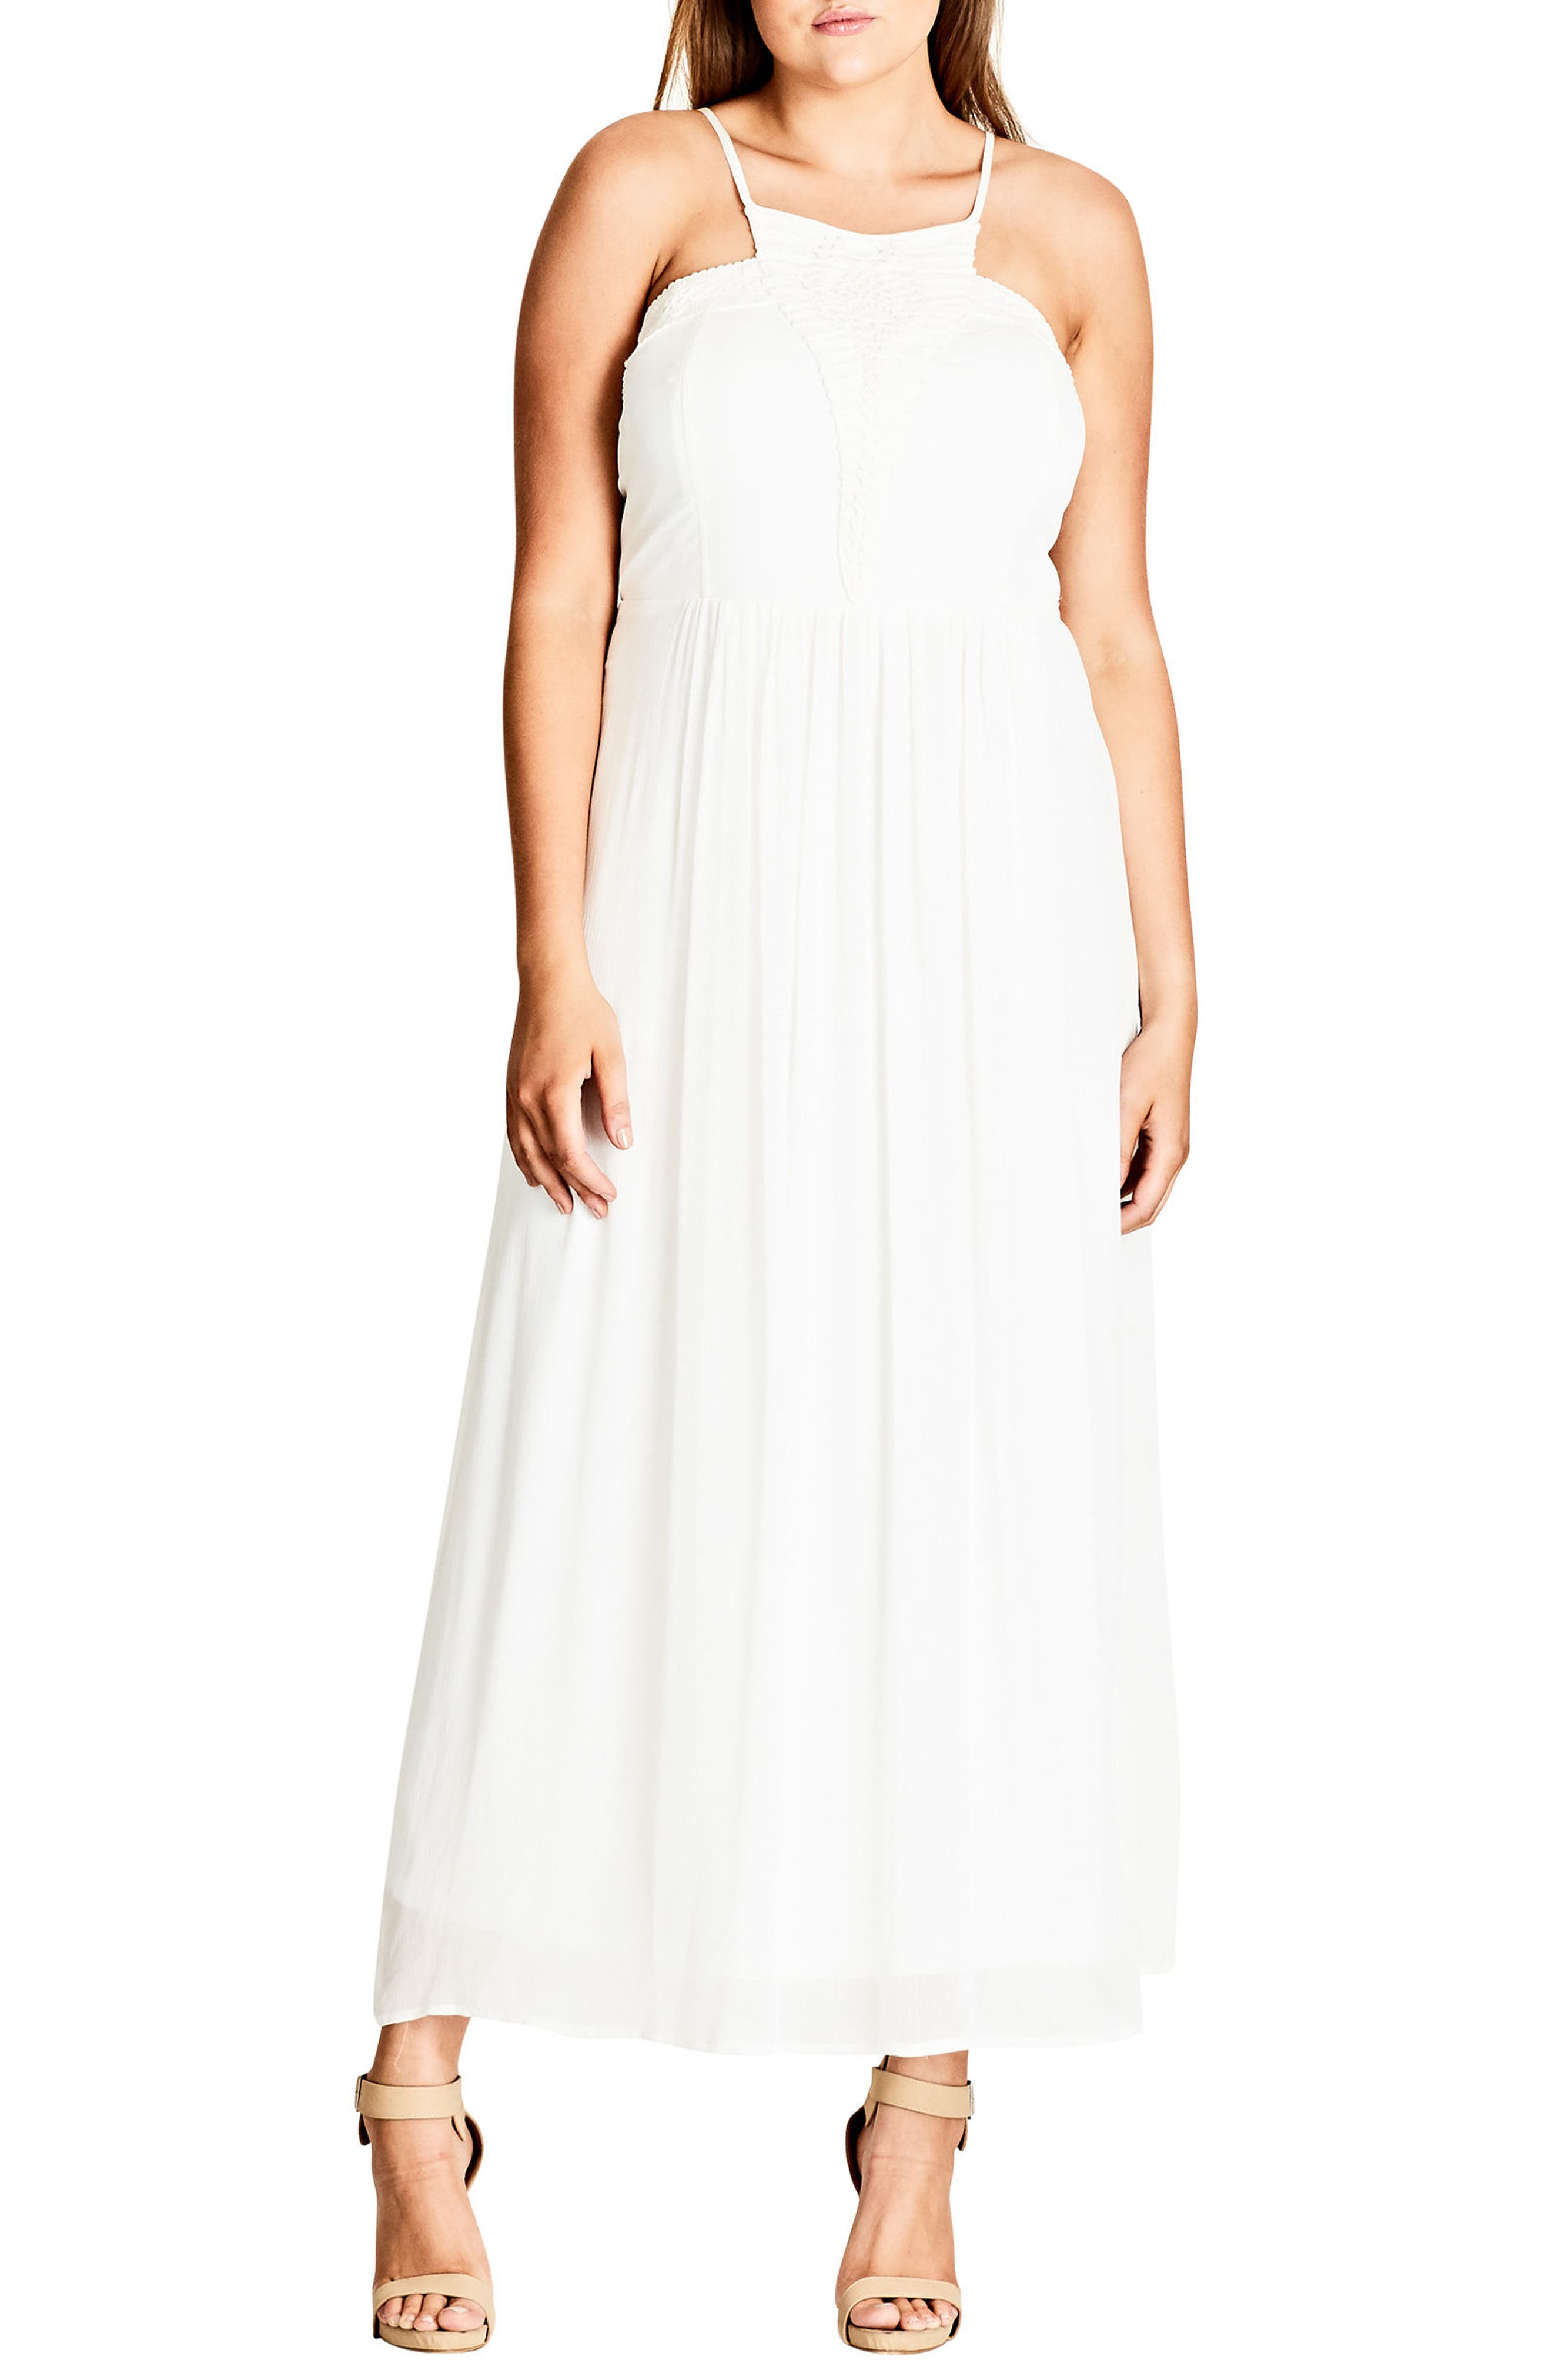 Purity Halter Style Maxi Dress,                         Main,                         color, Ivory